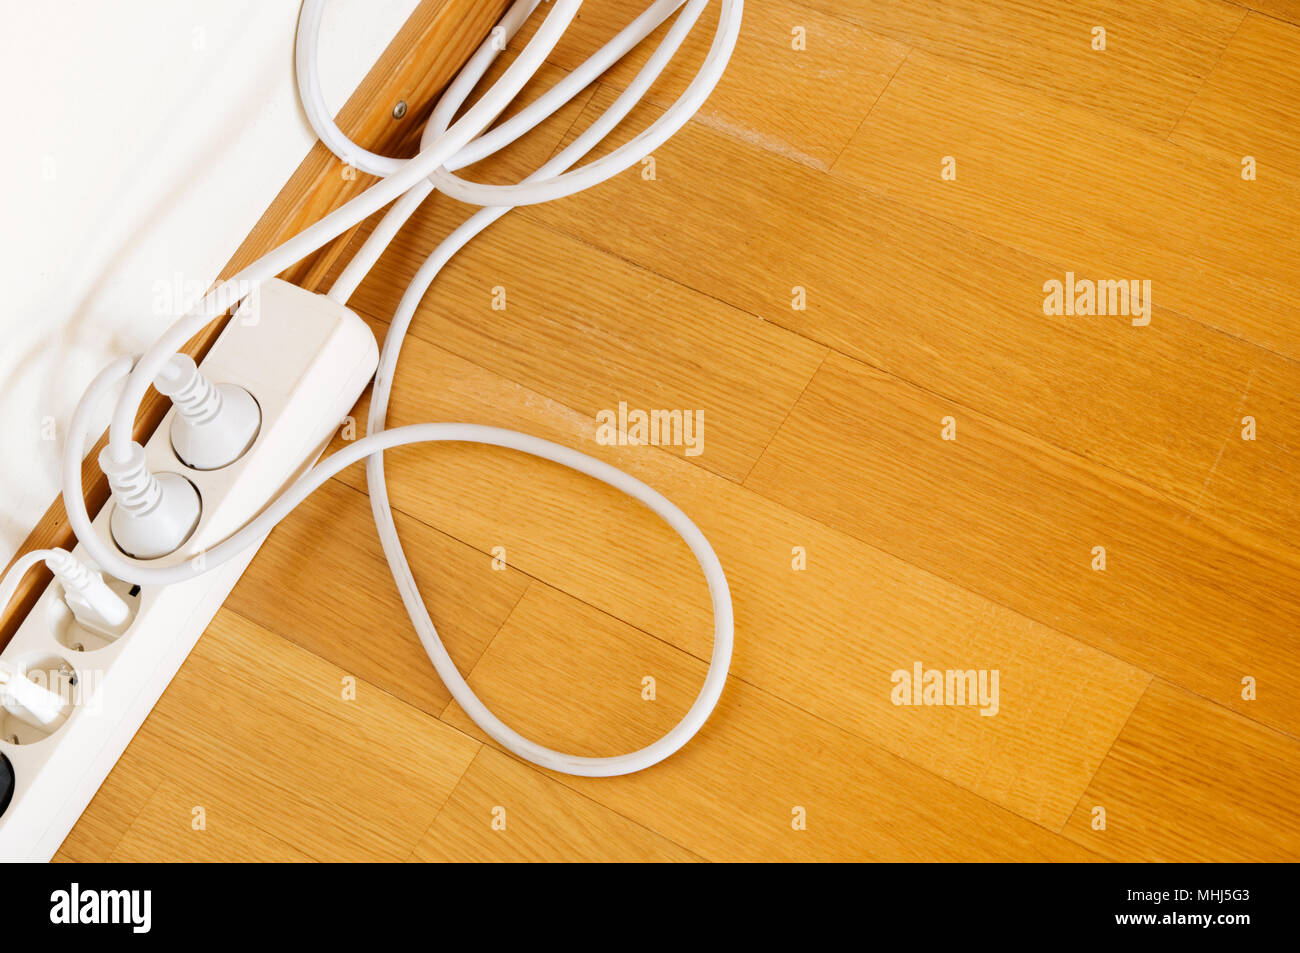 Wall Outlet Cords Stock Photos Images Alamy Australian Dual 3 Pin Socketoutlet Construction Multiple Socket On Wooden Floor Image